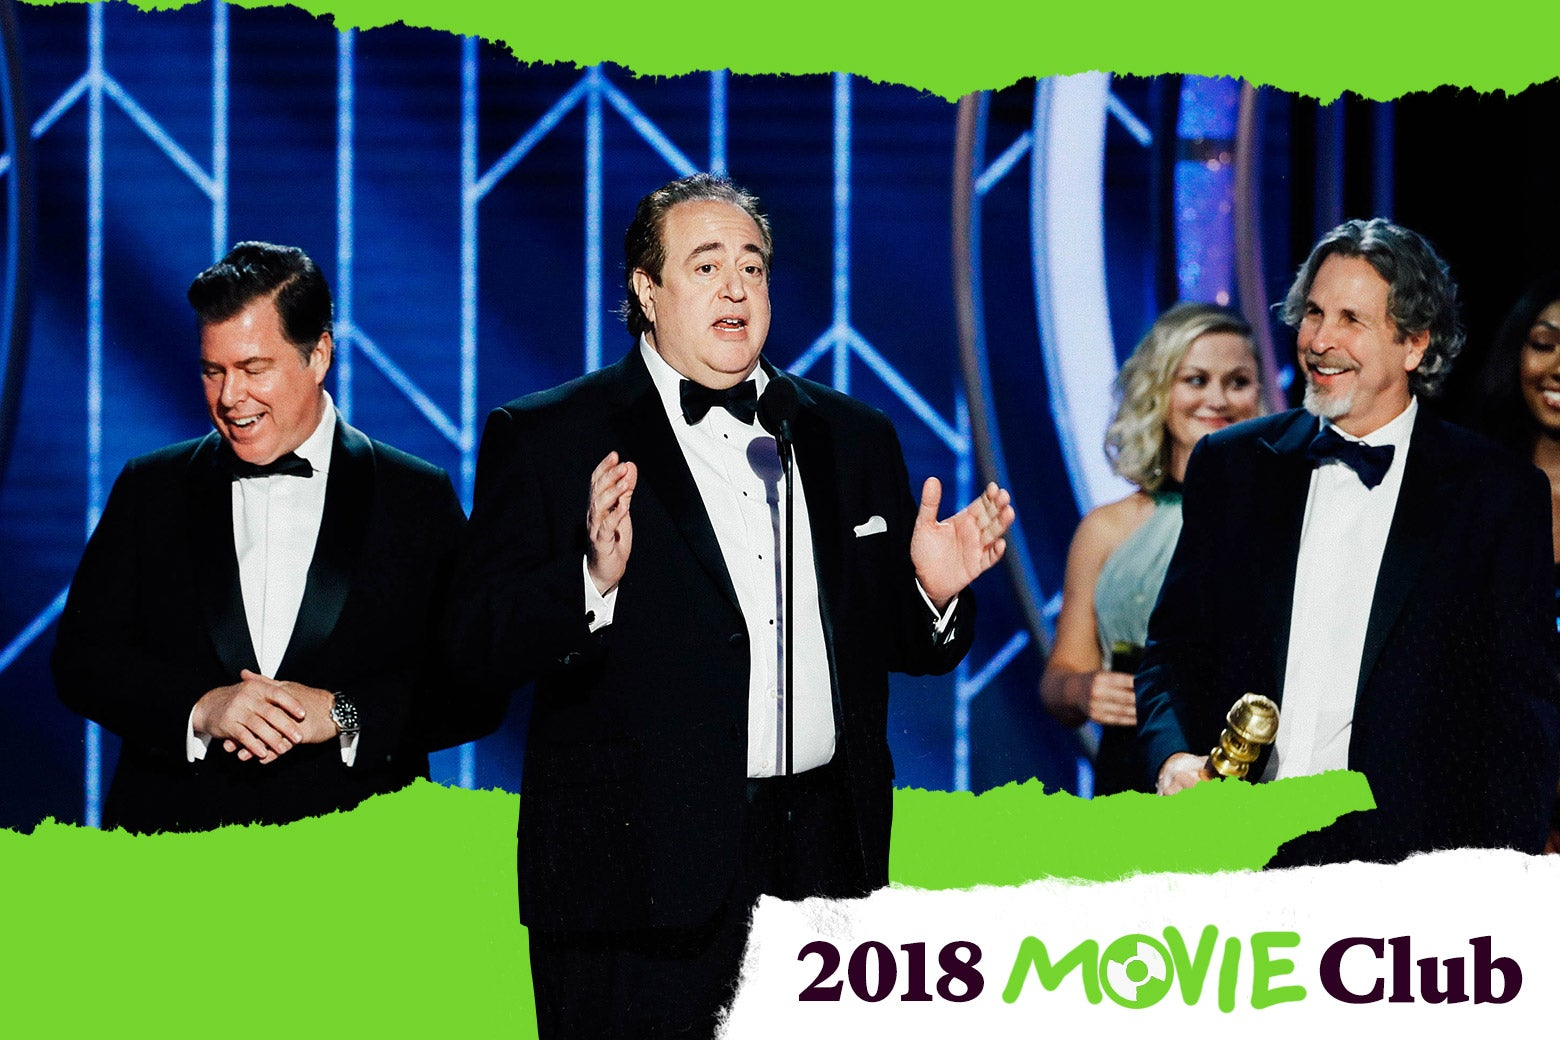 Brian Currie, Nick Vallelonga, and Peter Farrelly onstage at the Golden Globes.